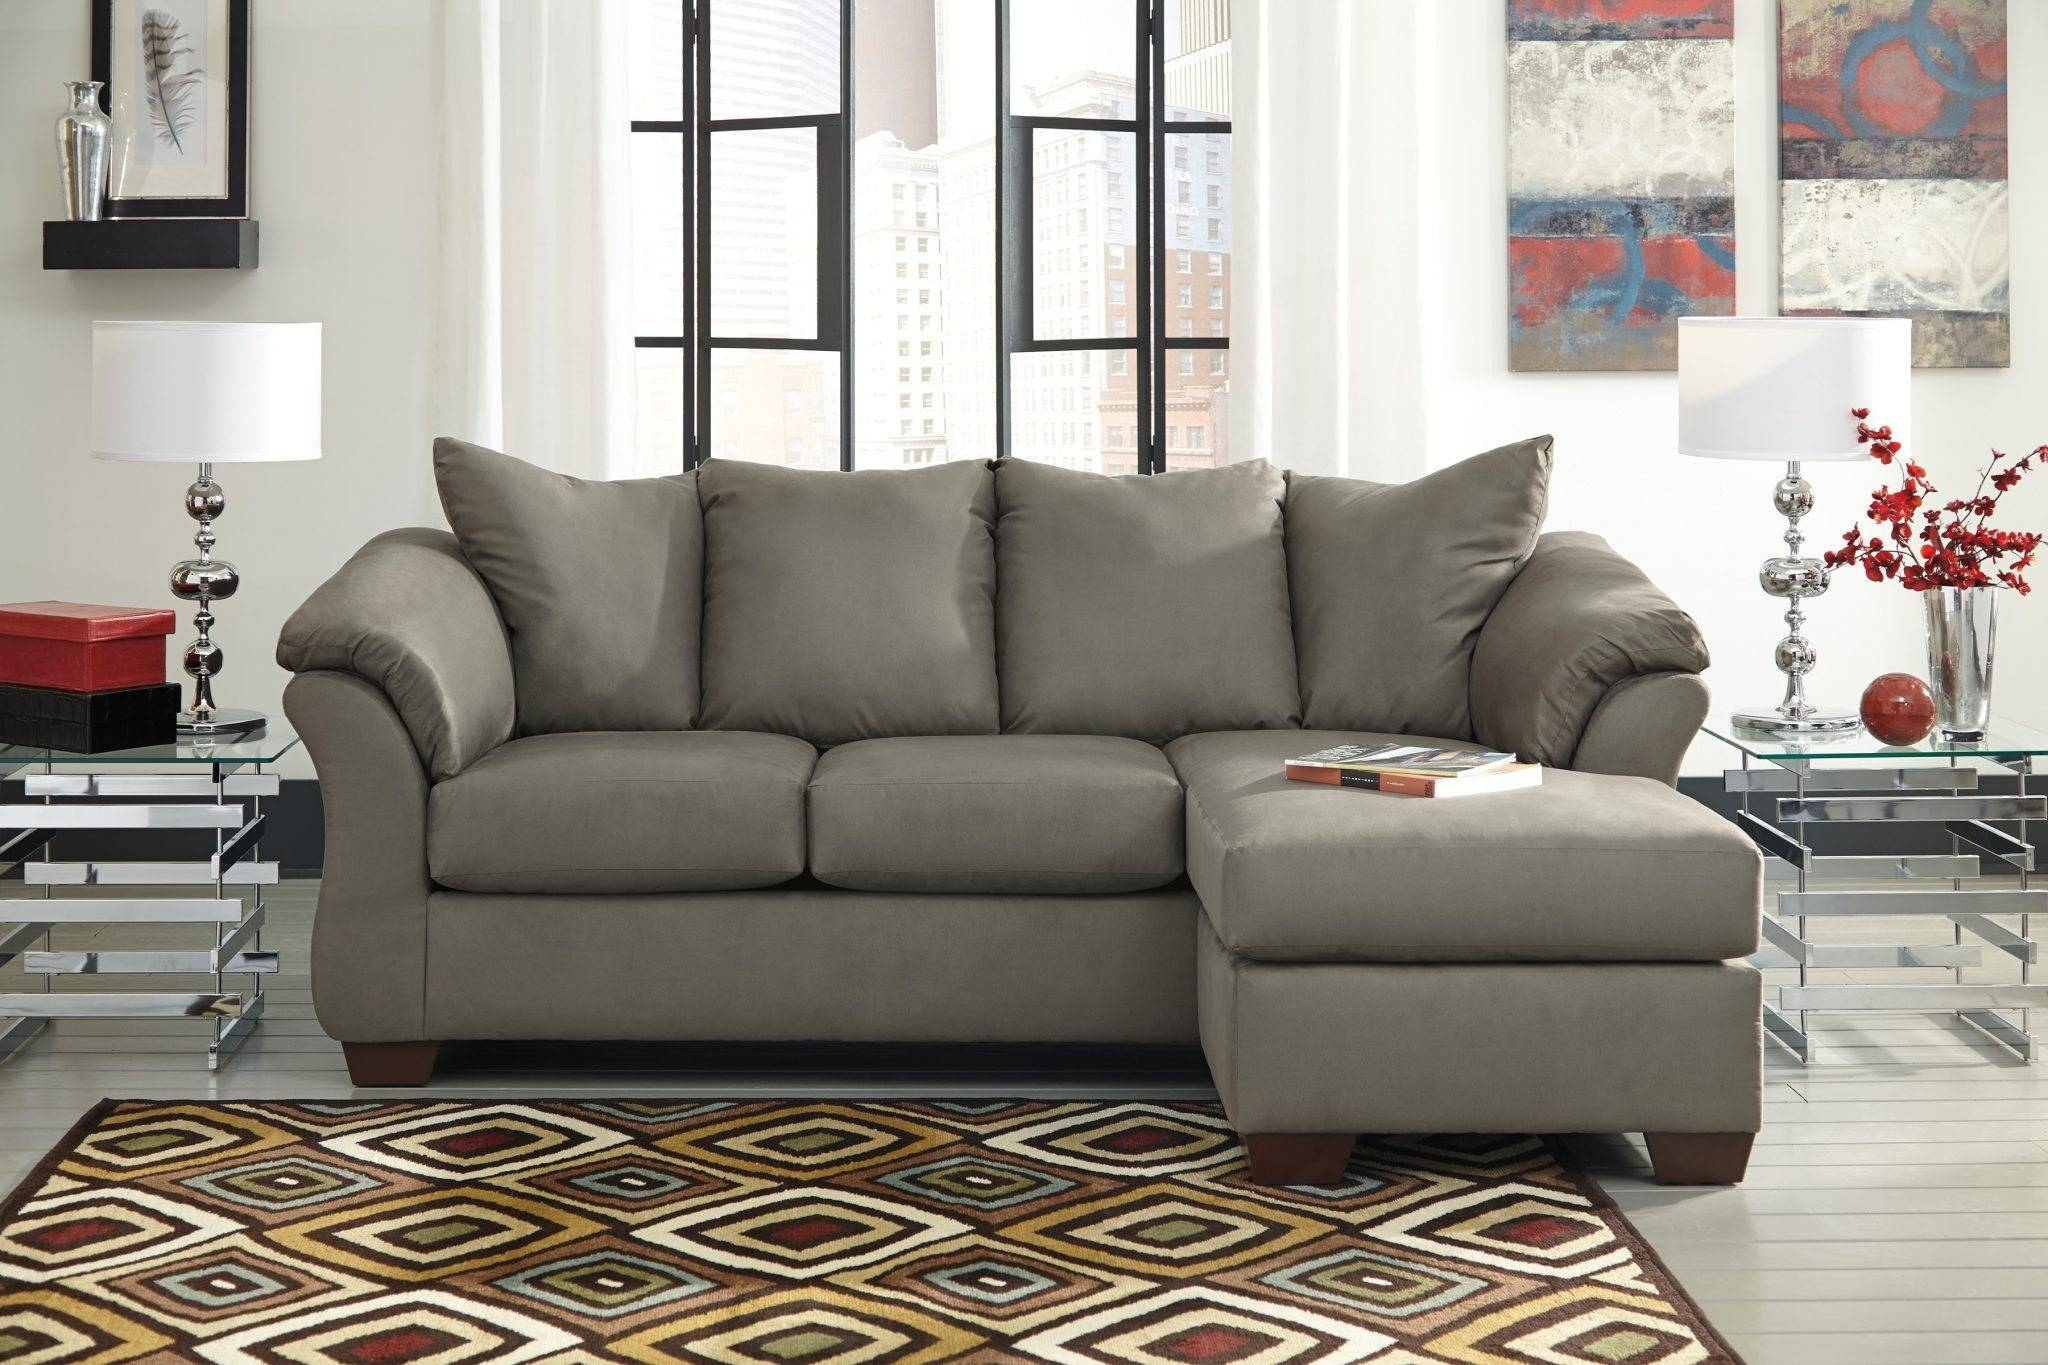 Furniture: Ashley Sofas For Enjoy Classic Seating With Simple With Regard To Sectional Sofas Ashley Furniture (View 7 of 15)